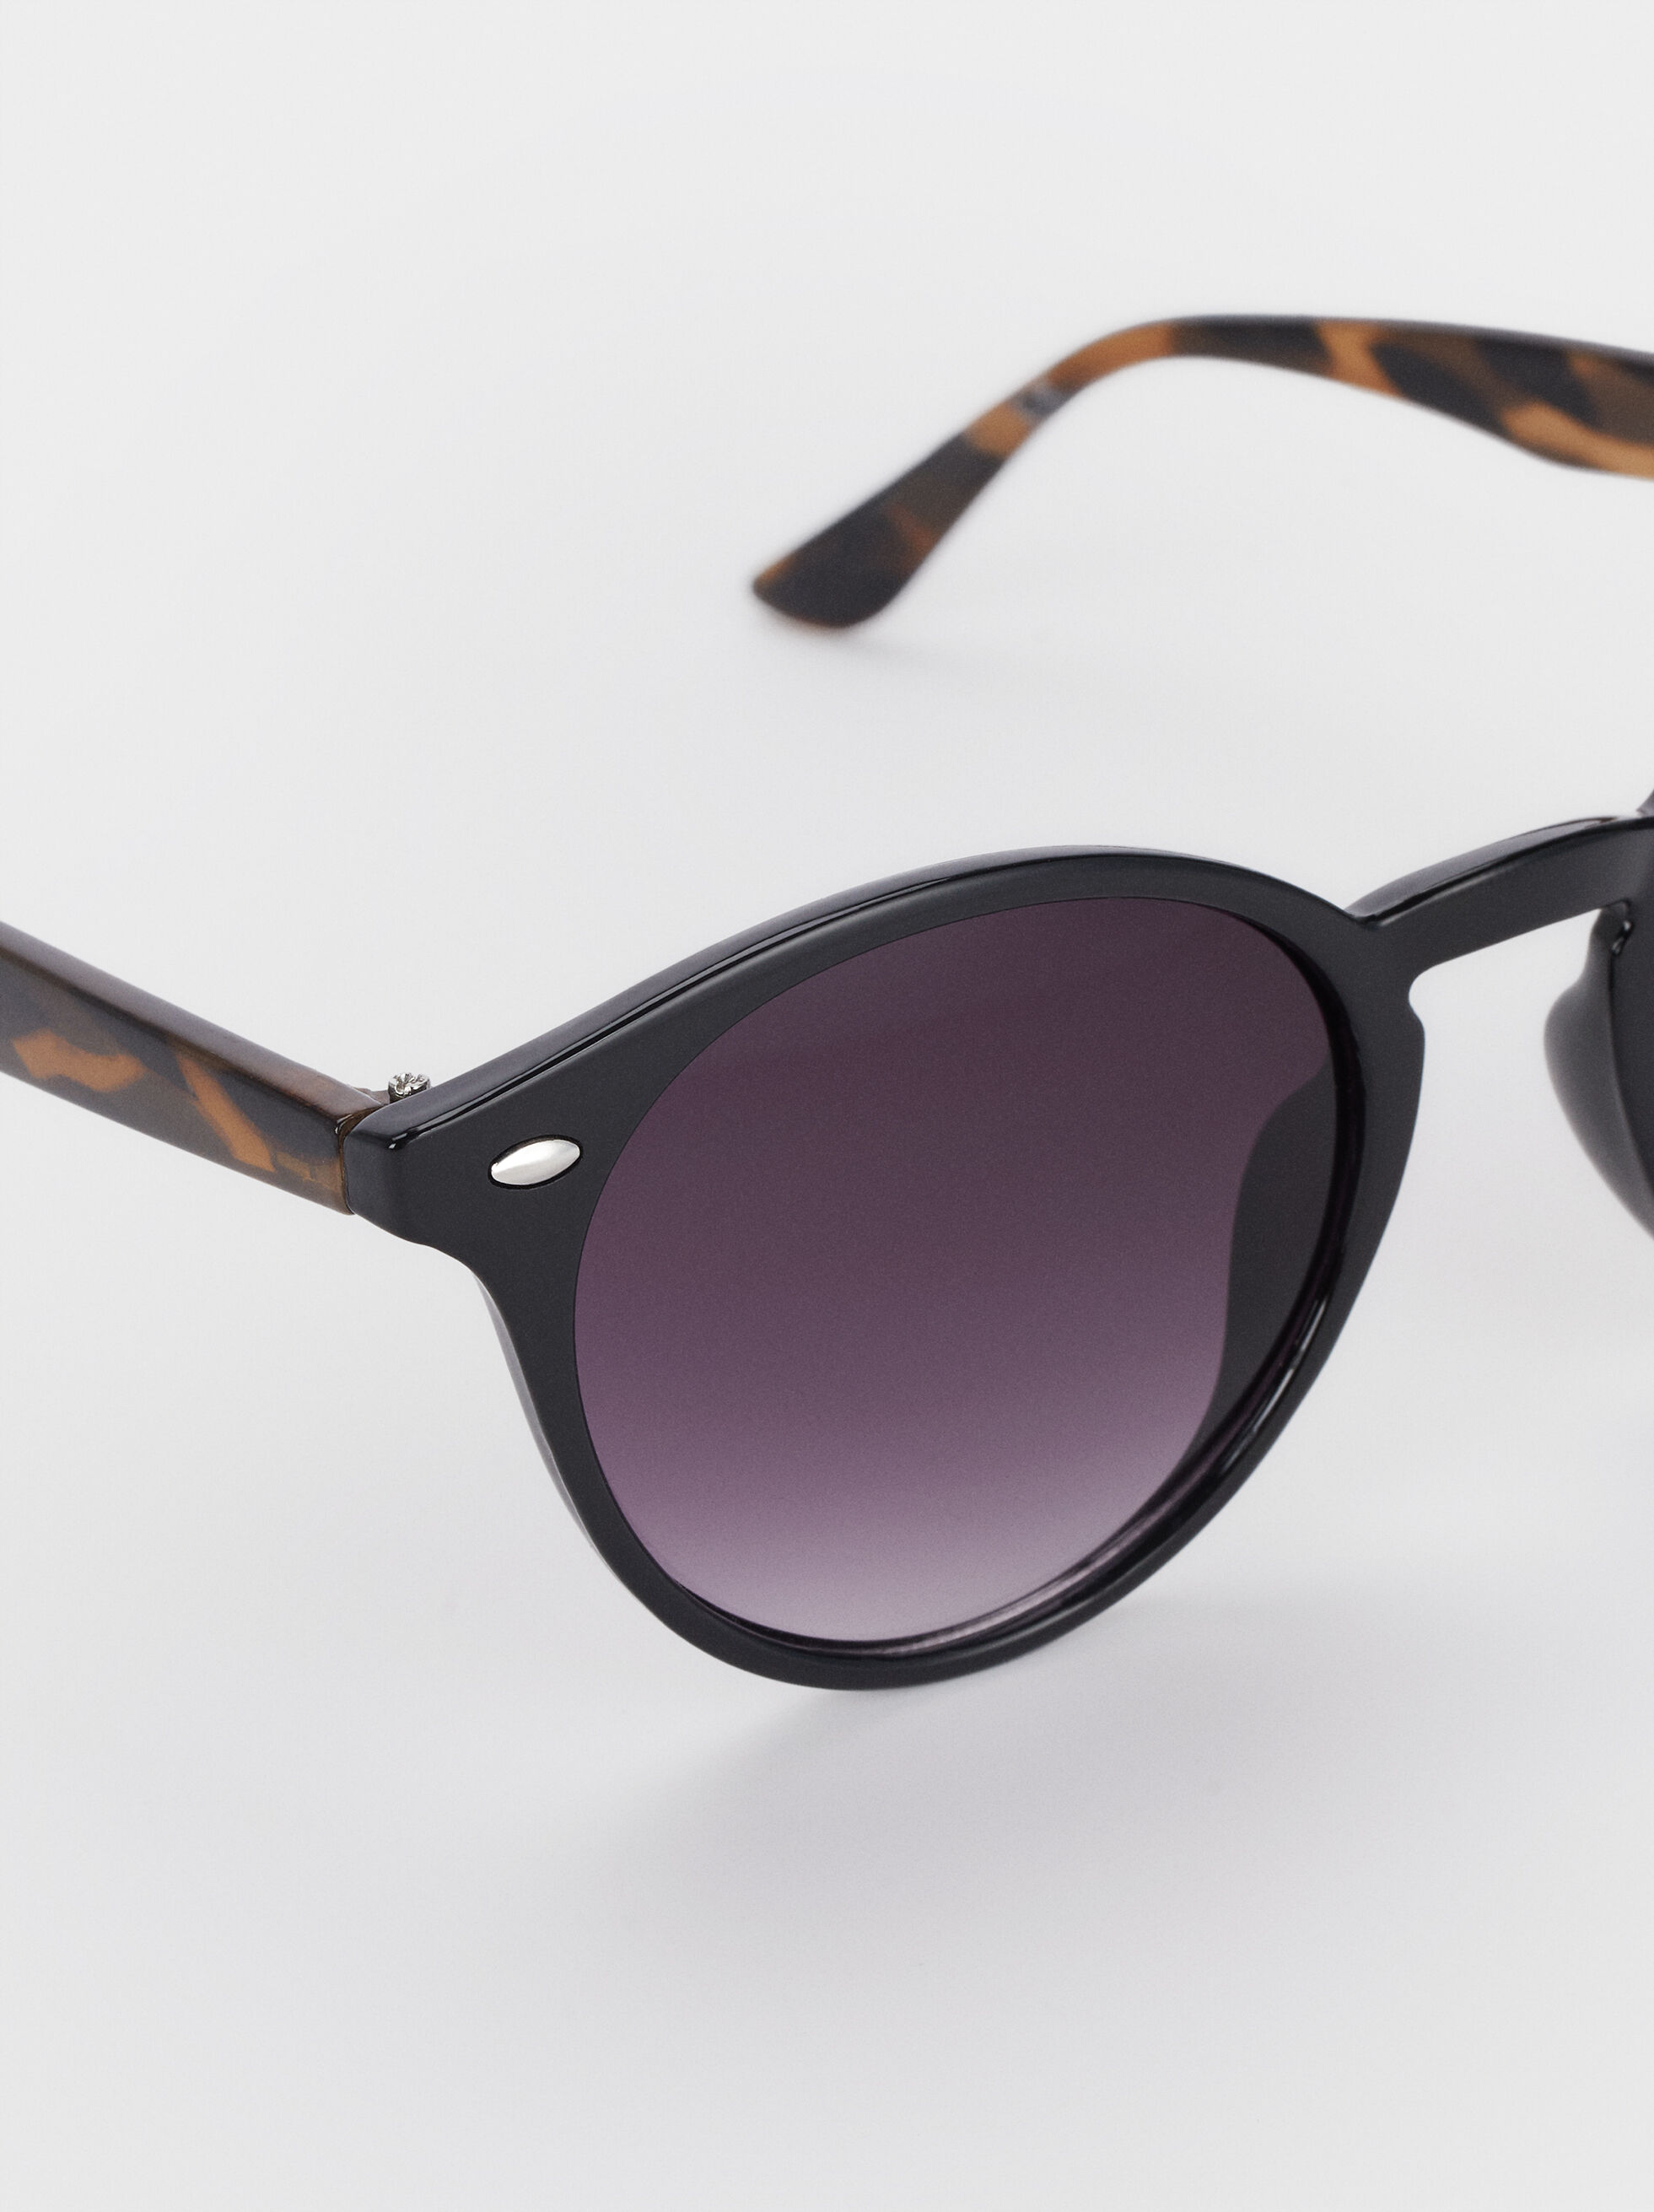 Round Sunglasses, Black, hi-res